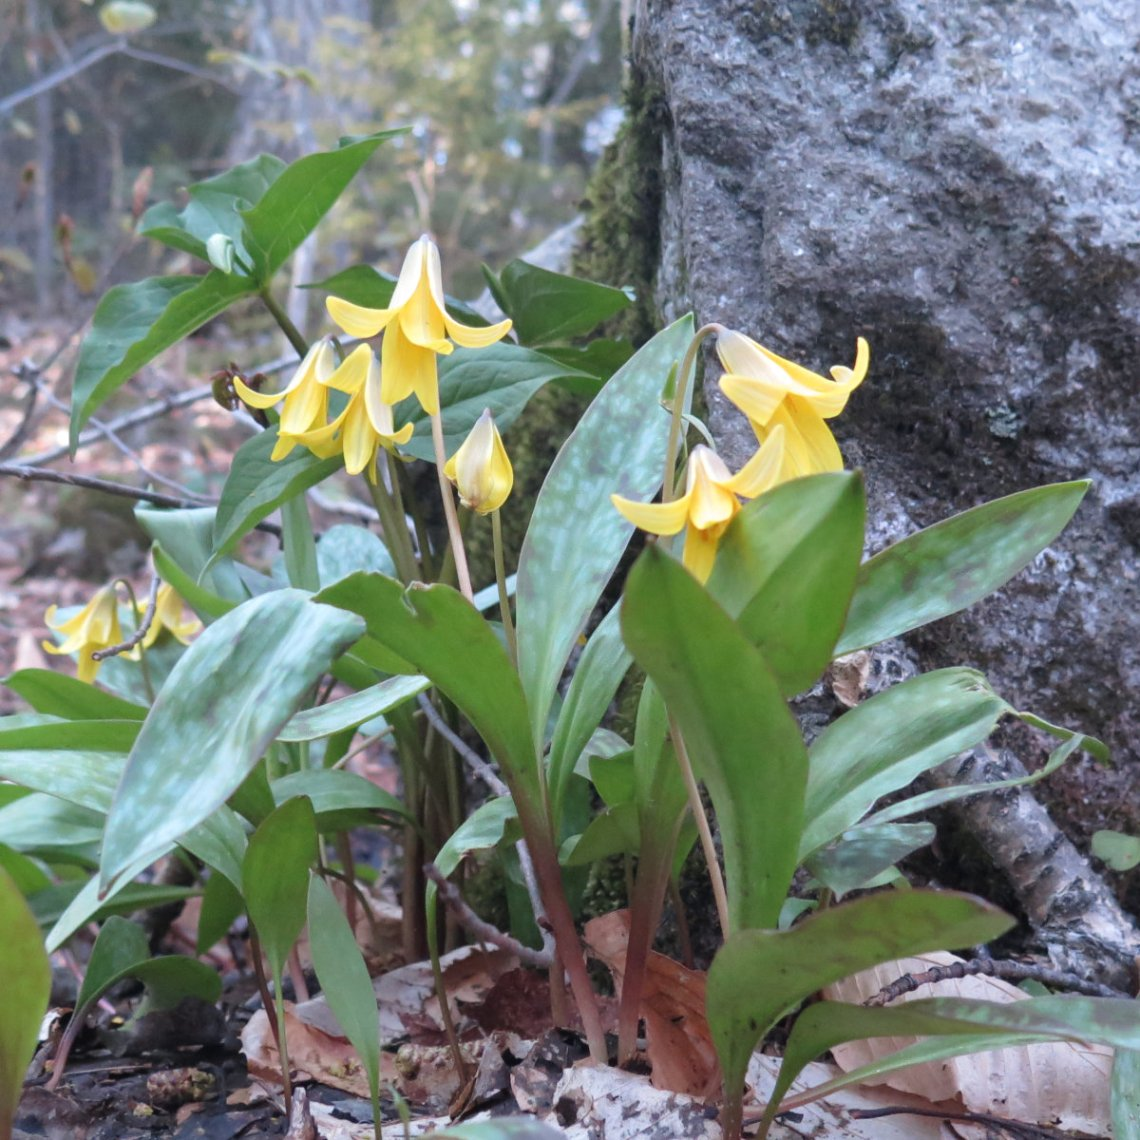 Tecumseh-Trout-Lilies-20190522